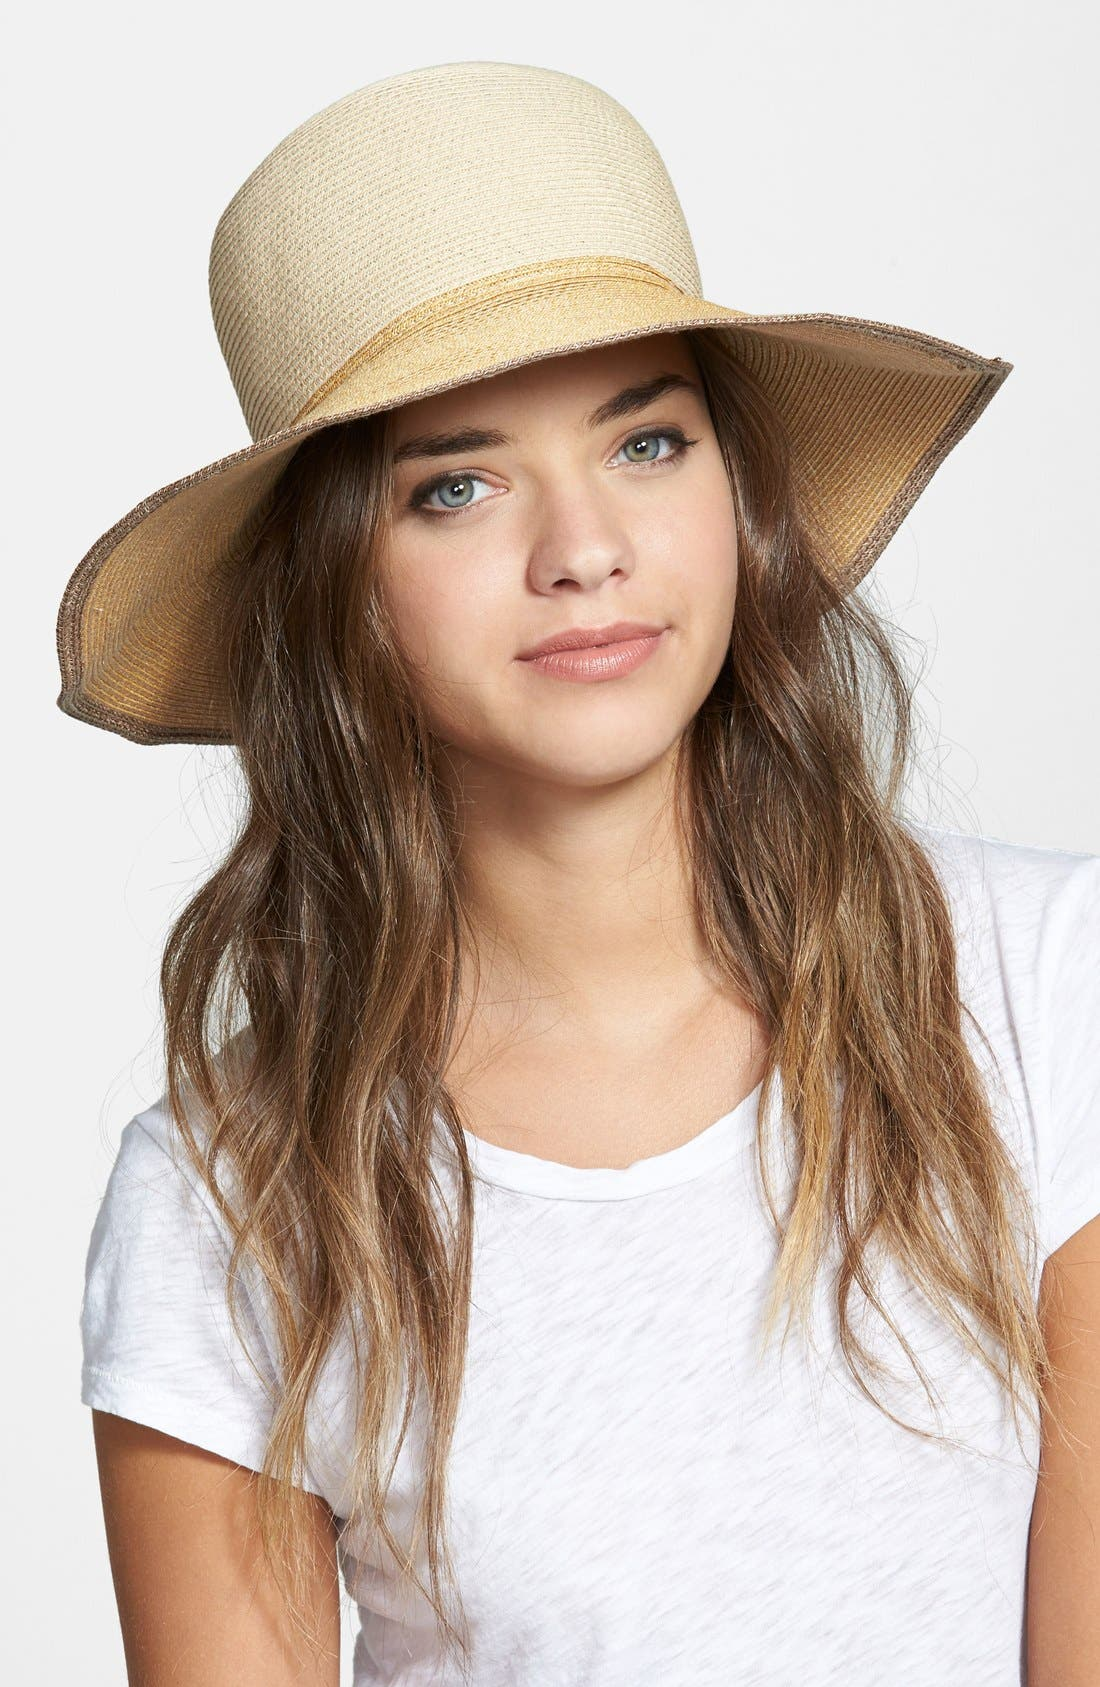 Alternate Image 1 Selected - rag & bone 'Lily' Straw Sun Hat